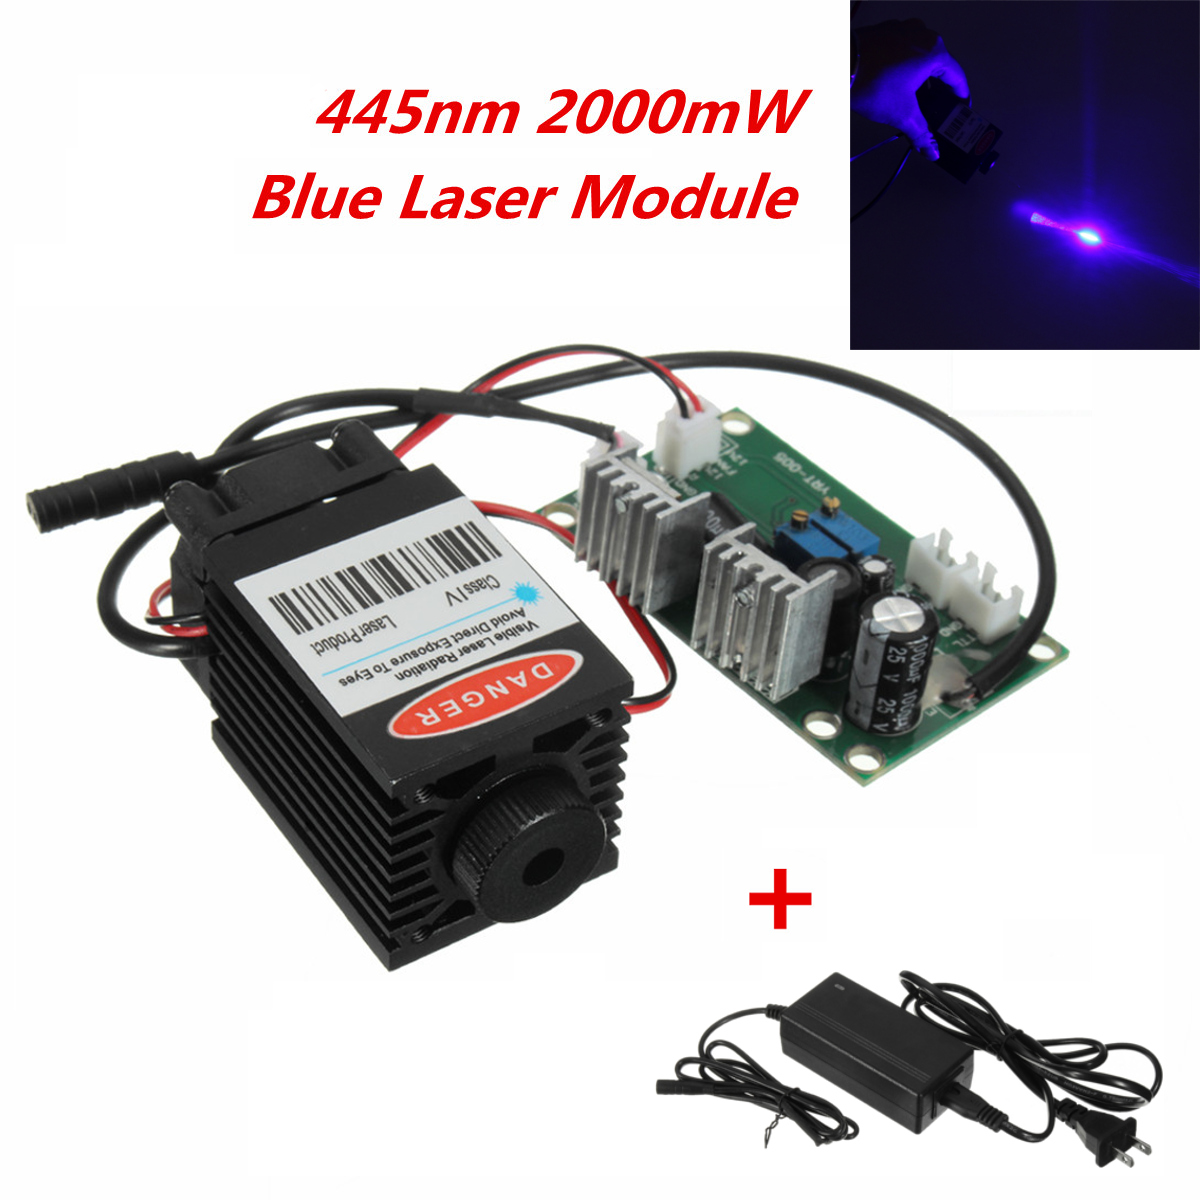 Focusable High Power 445nm 450nm 2000mW 2W Blue Laser Module TTL Driver board For CNC Cutter Engraving Machine diy focusable 5w laser module 5 5w laser module 7w high power for cnc cutter laser engraving machine 2w 2 5w laser module 445nm